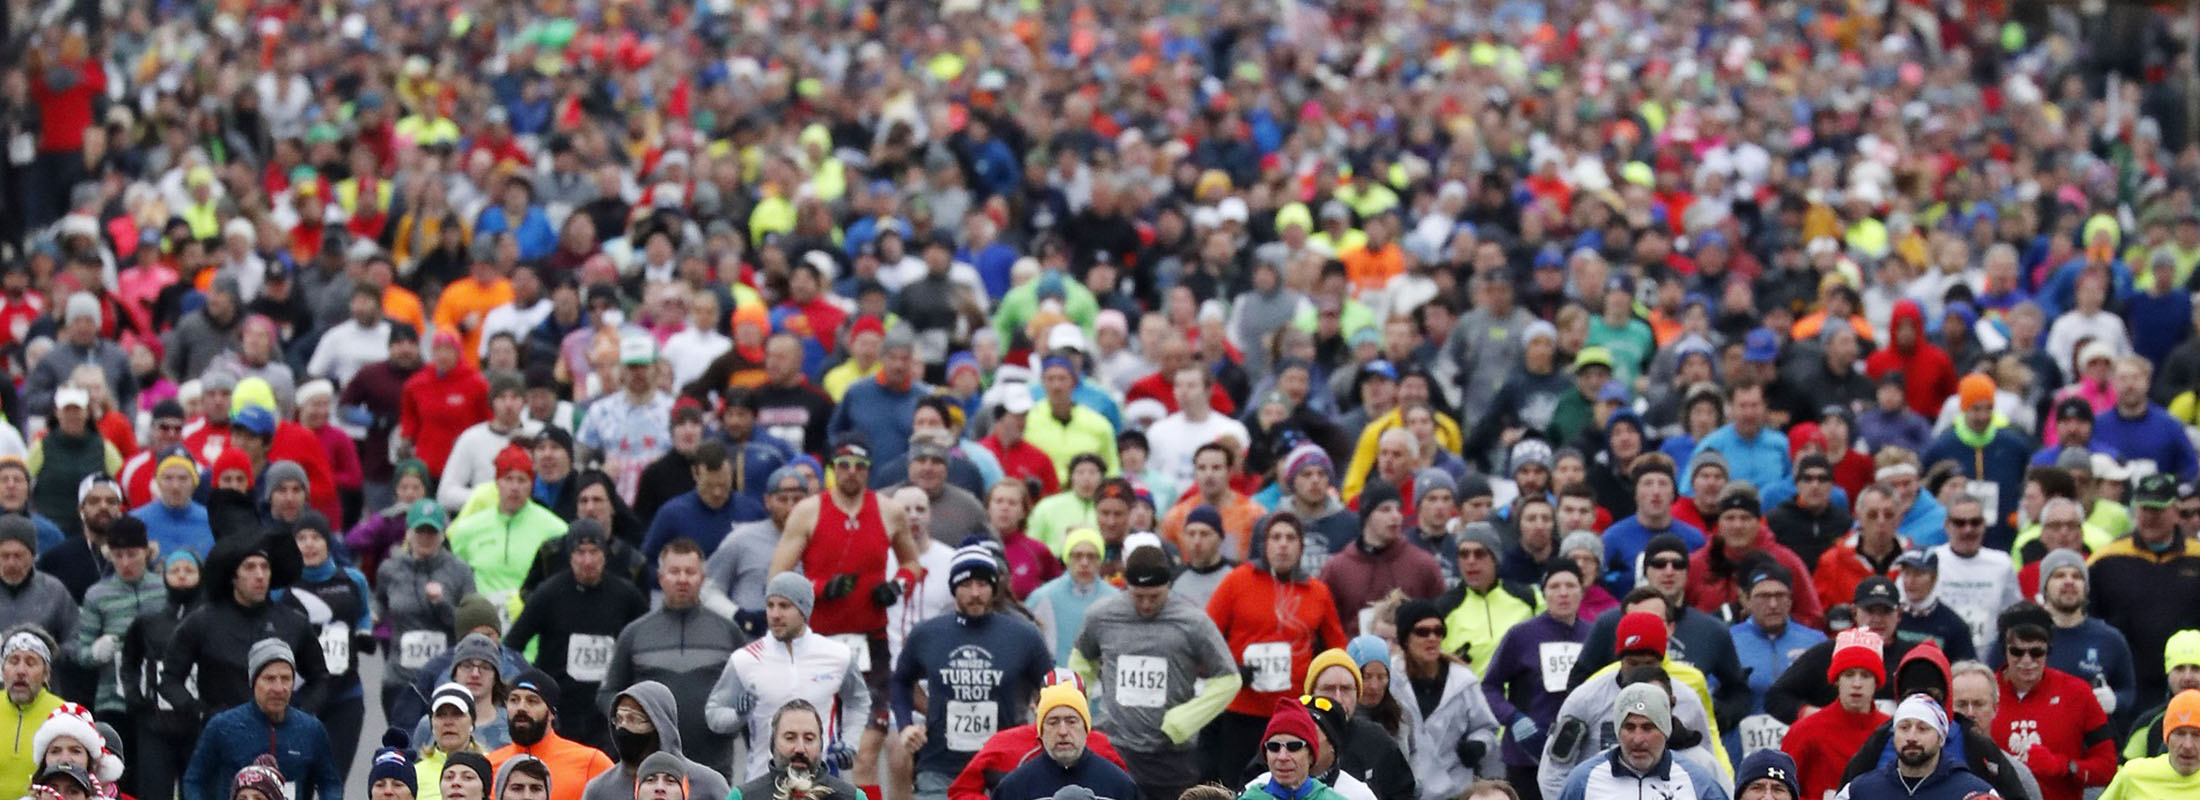 It'll be a chilly Turkey Trot in Buffalo this year, National Weather Service forecasts show. (Mark Mulville/News file photo)